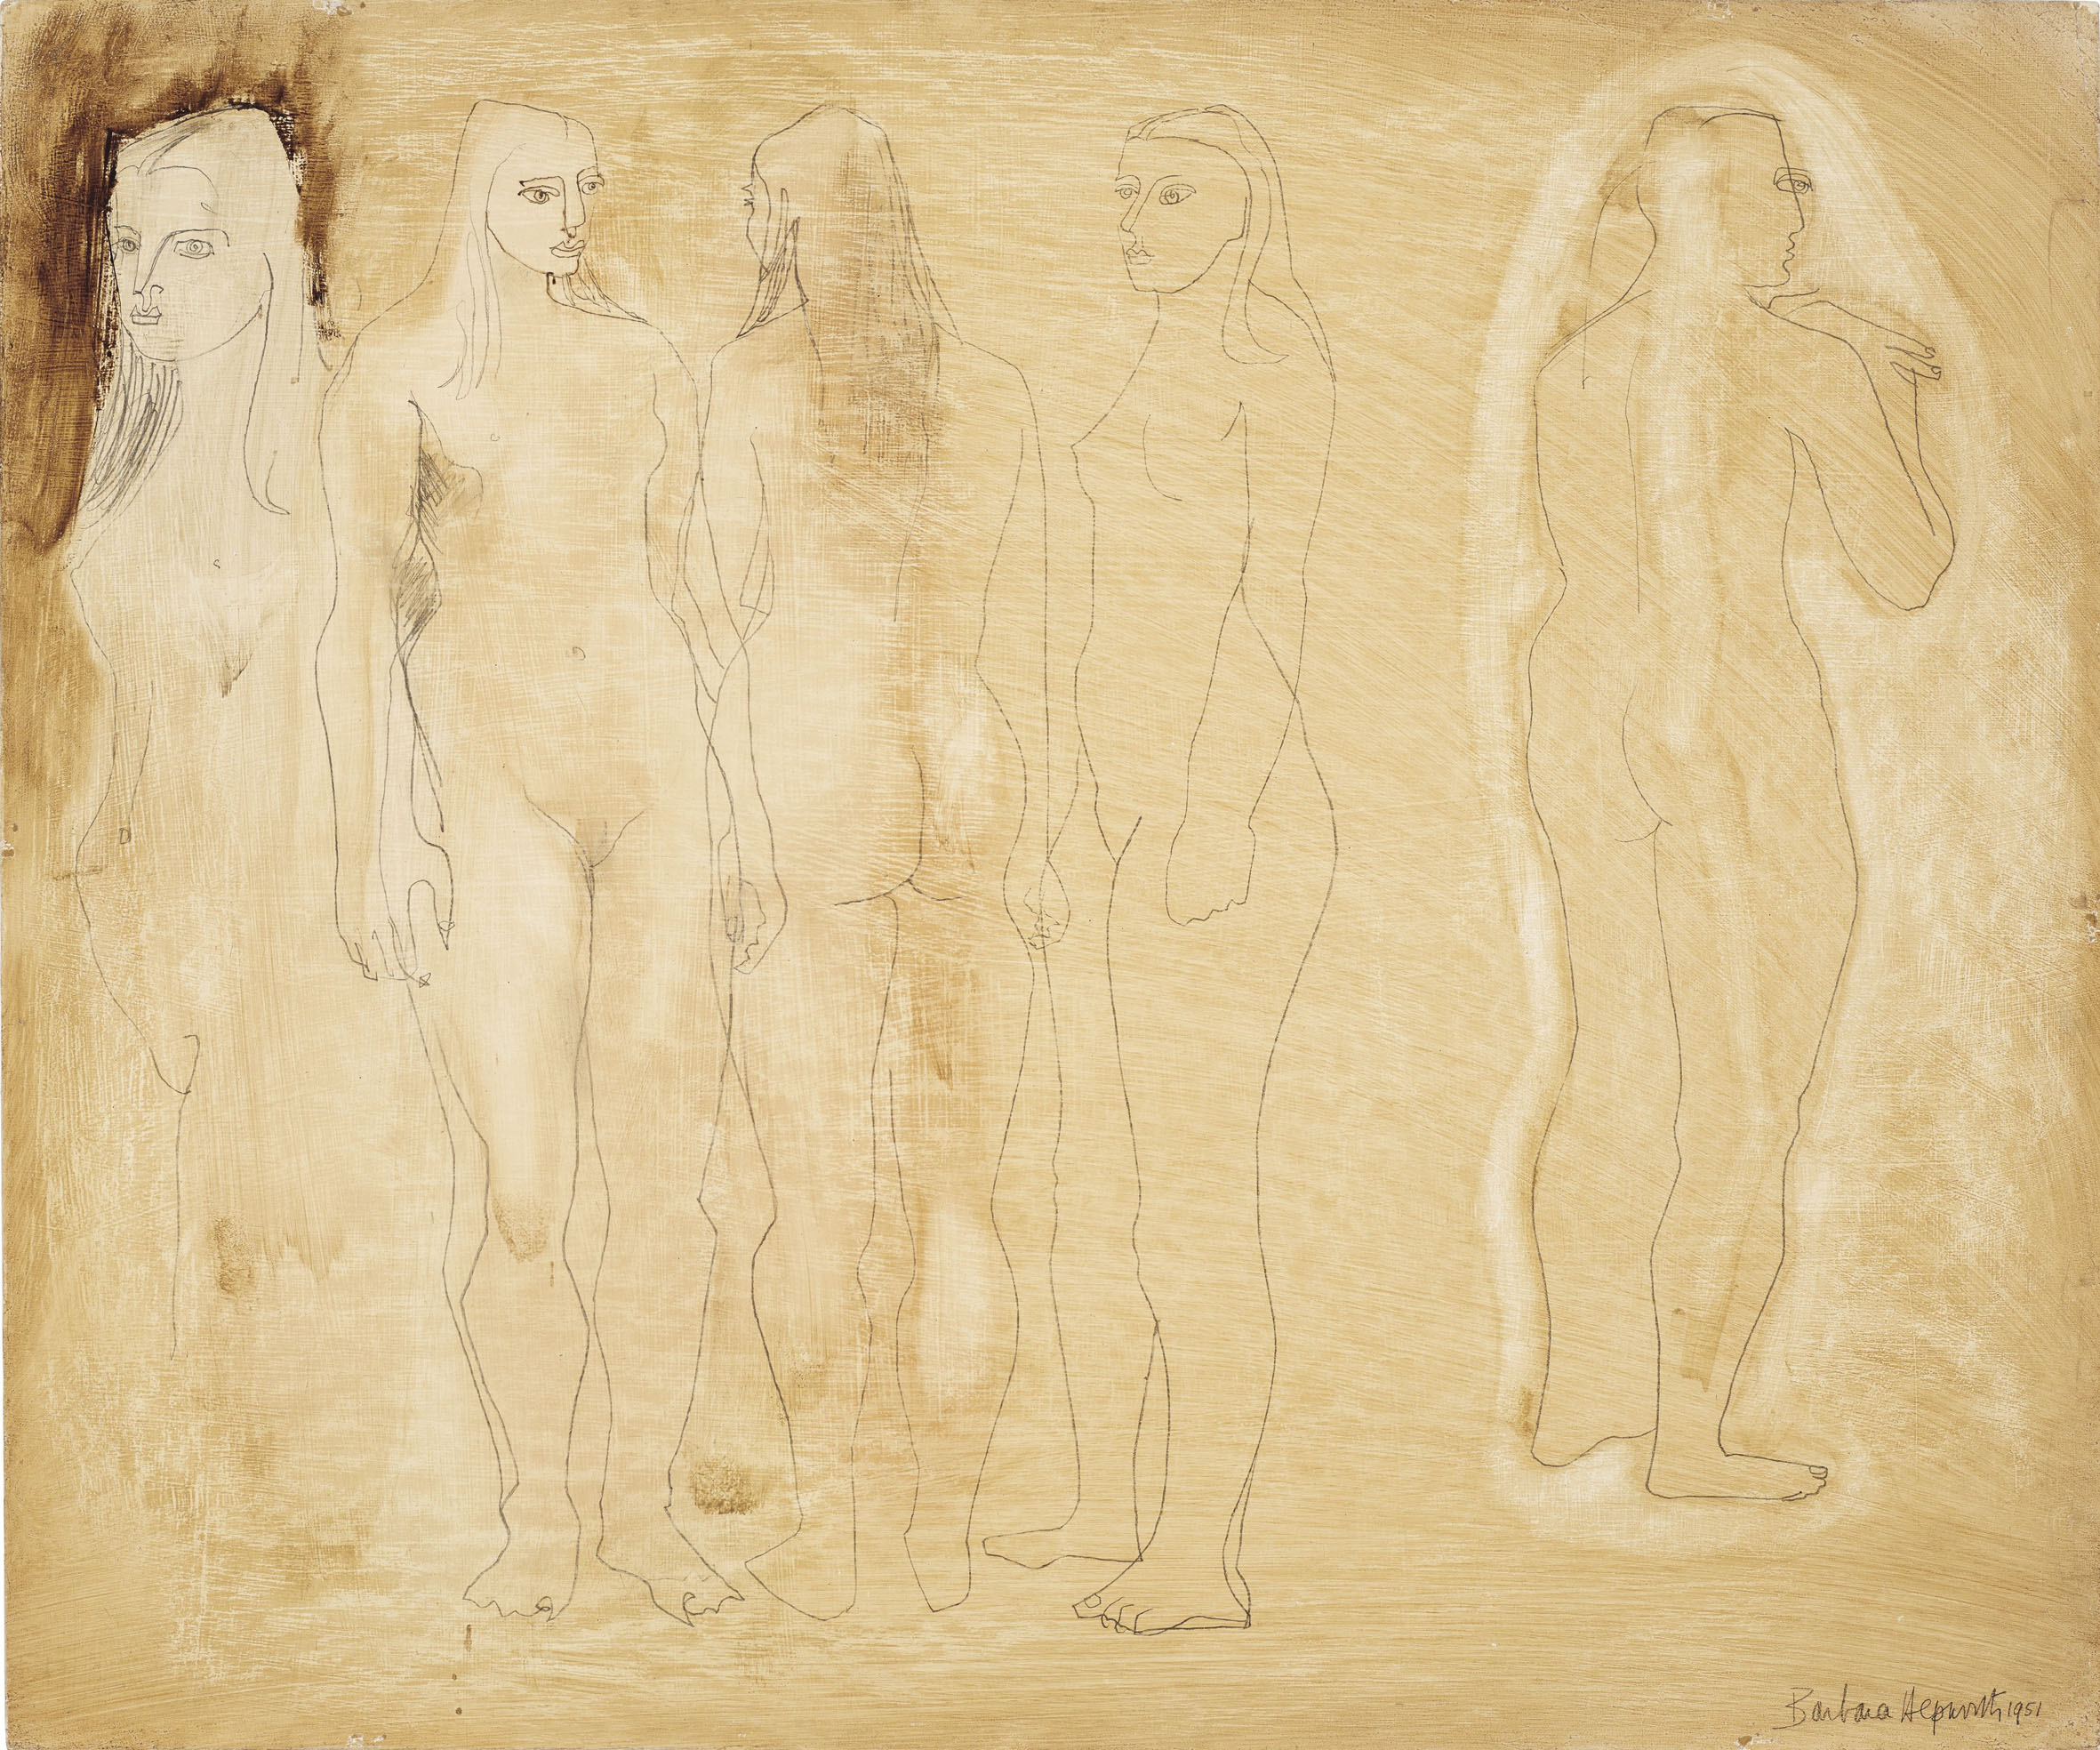 Barbara Hepworth (1903-1975) ,  Group of Figures and Head (Burnt Umber) , 1951, Oil and pencil on masonite, 50 x 60 cm